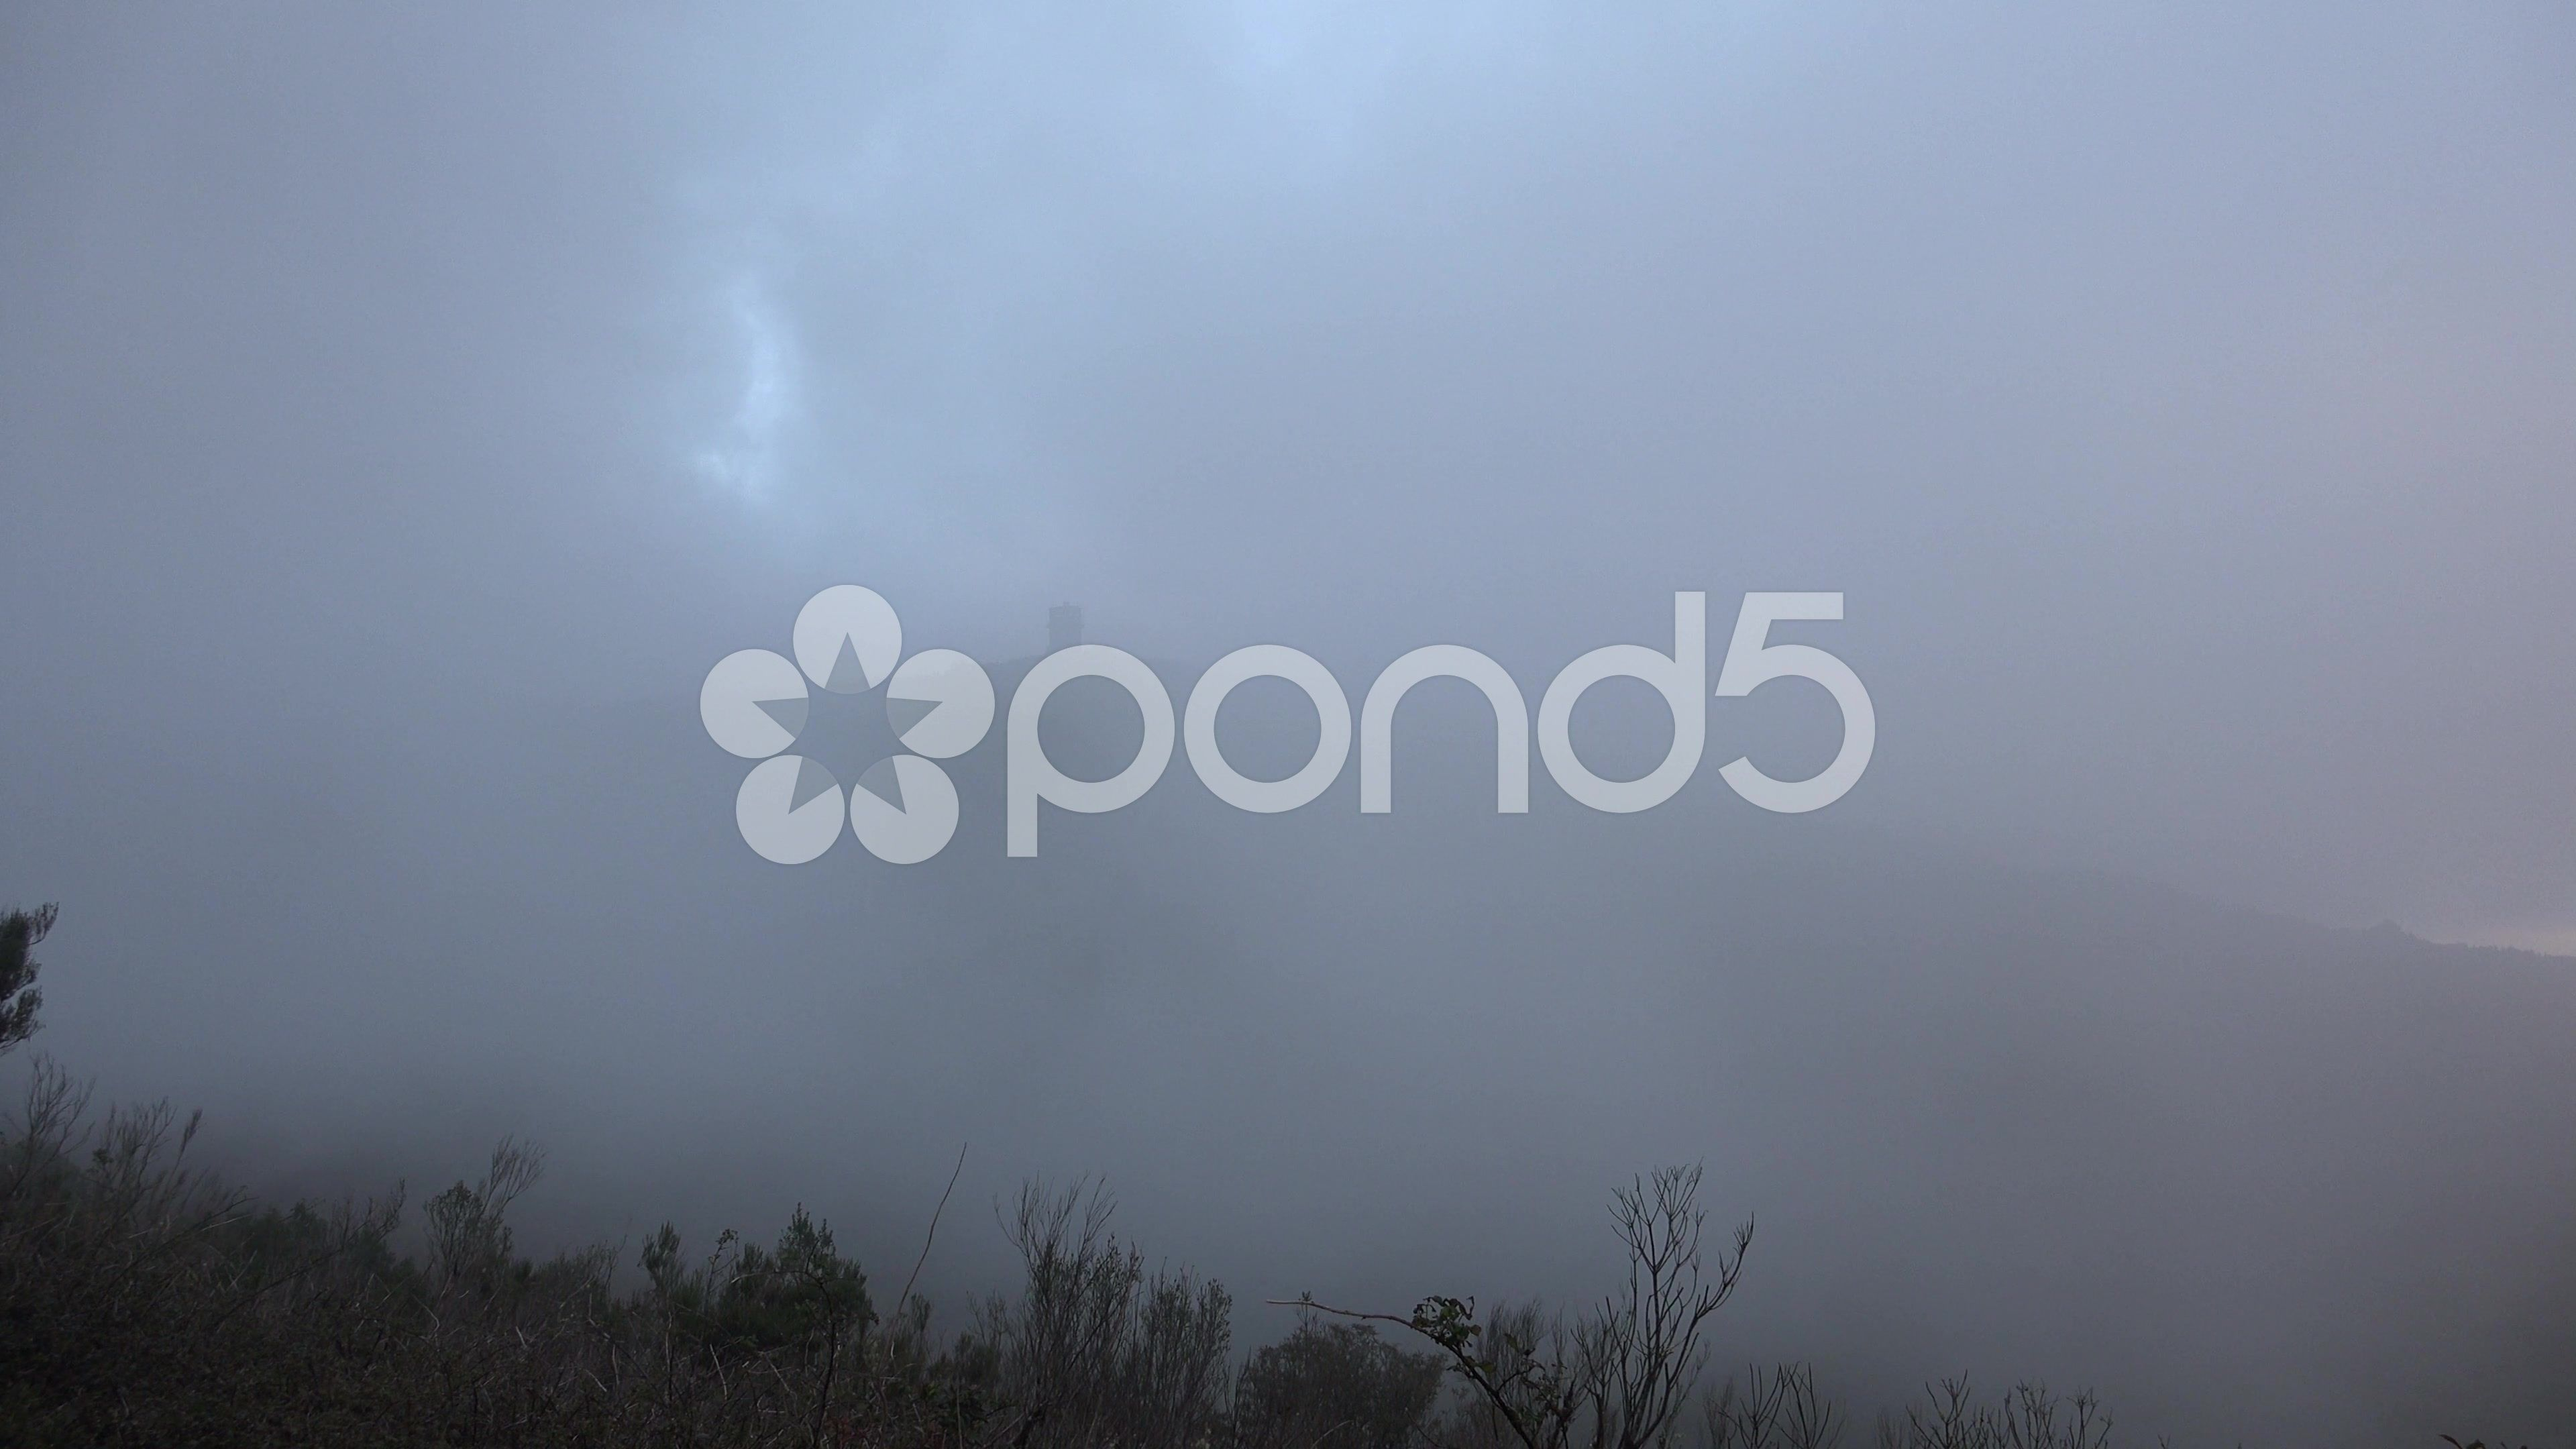 4k Evening clouds and fog at mountain highland sunset - Stock Footage | by Beckhusen